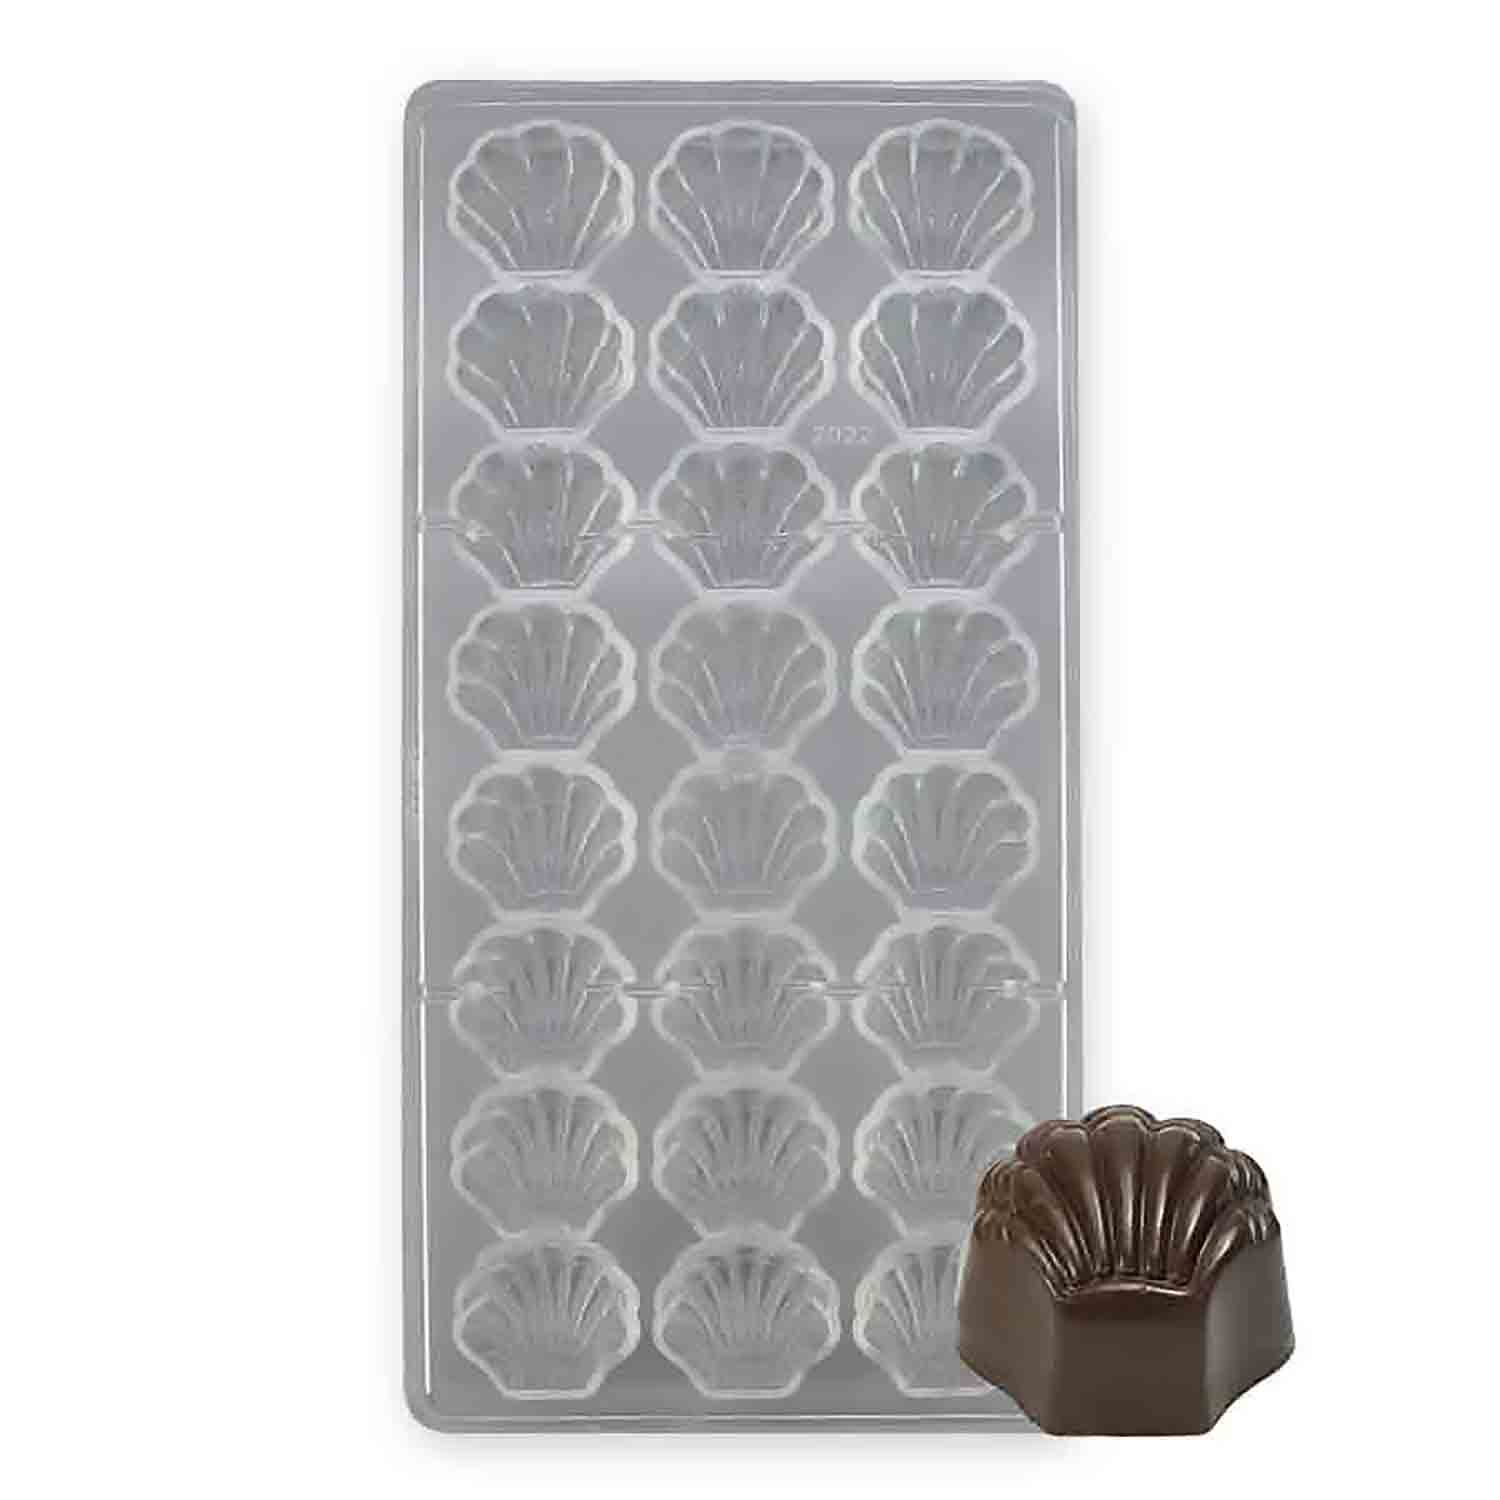 Sea Shell Polycarbonate Chocolate Candy Mold